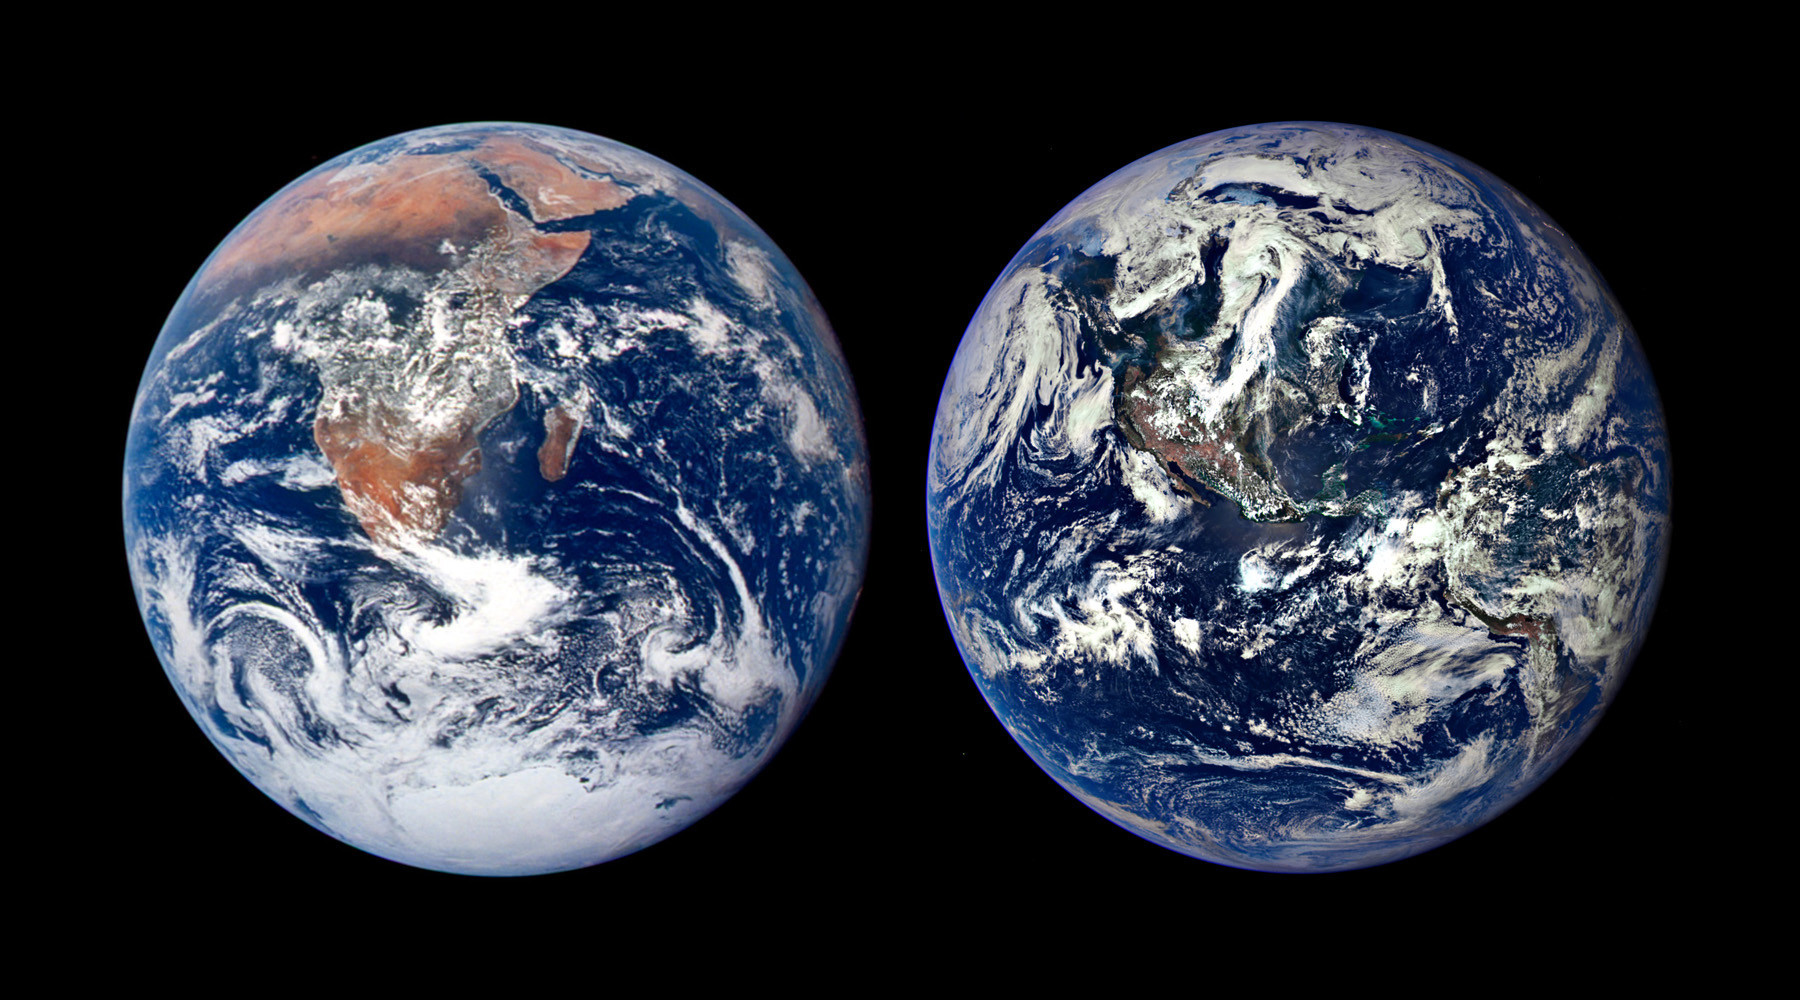 Nasa Photos Of Earth Comparing The Planet 1972 To 2015